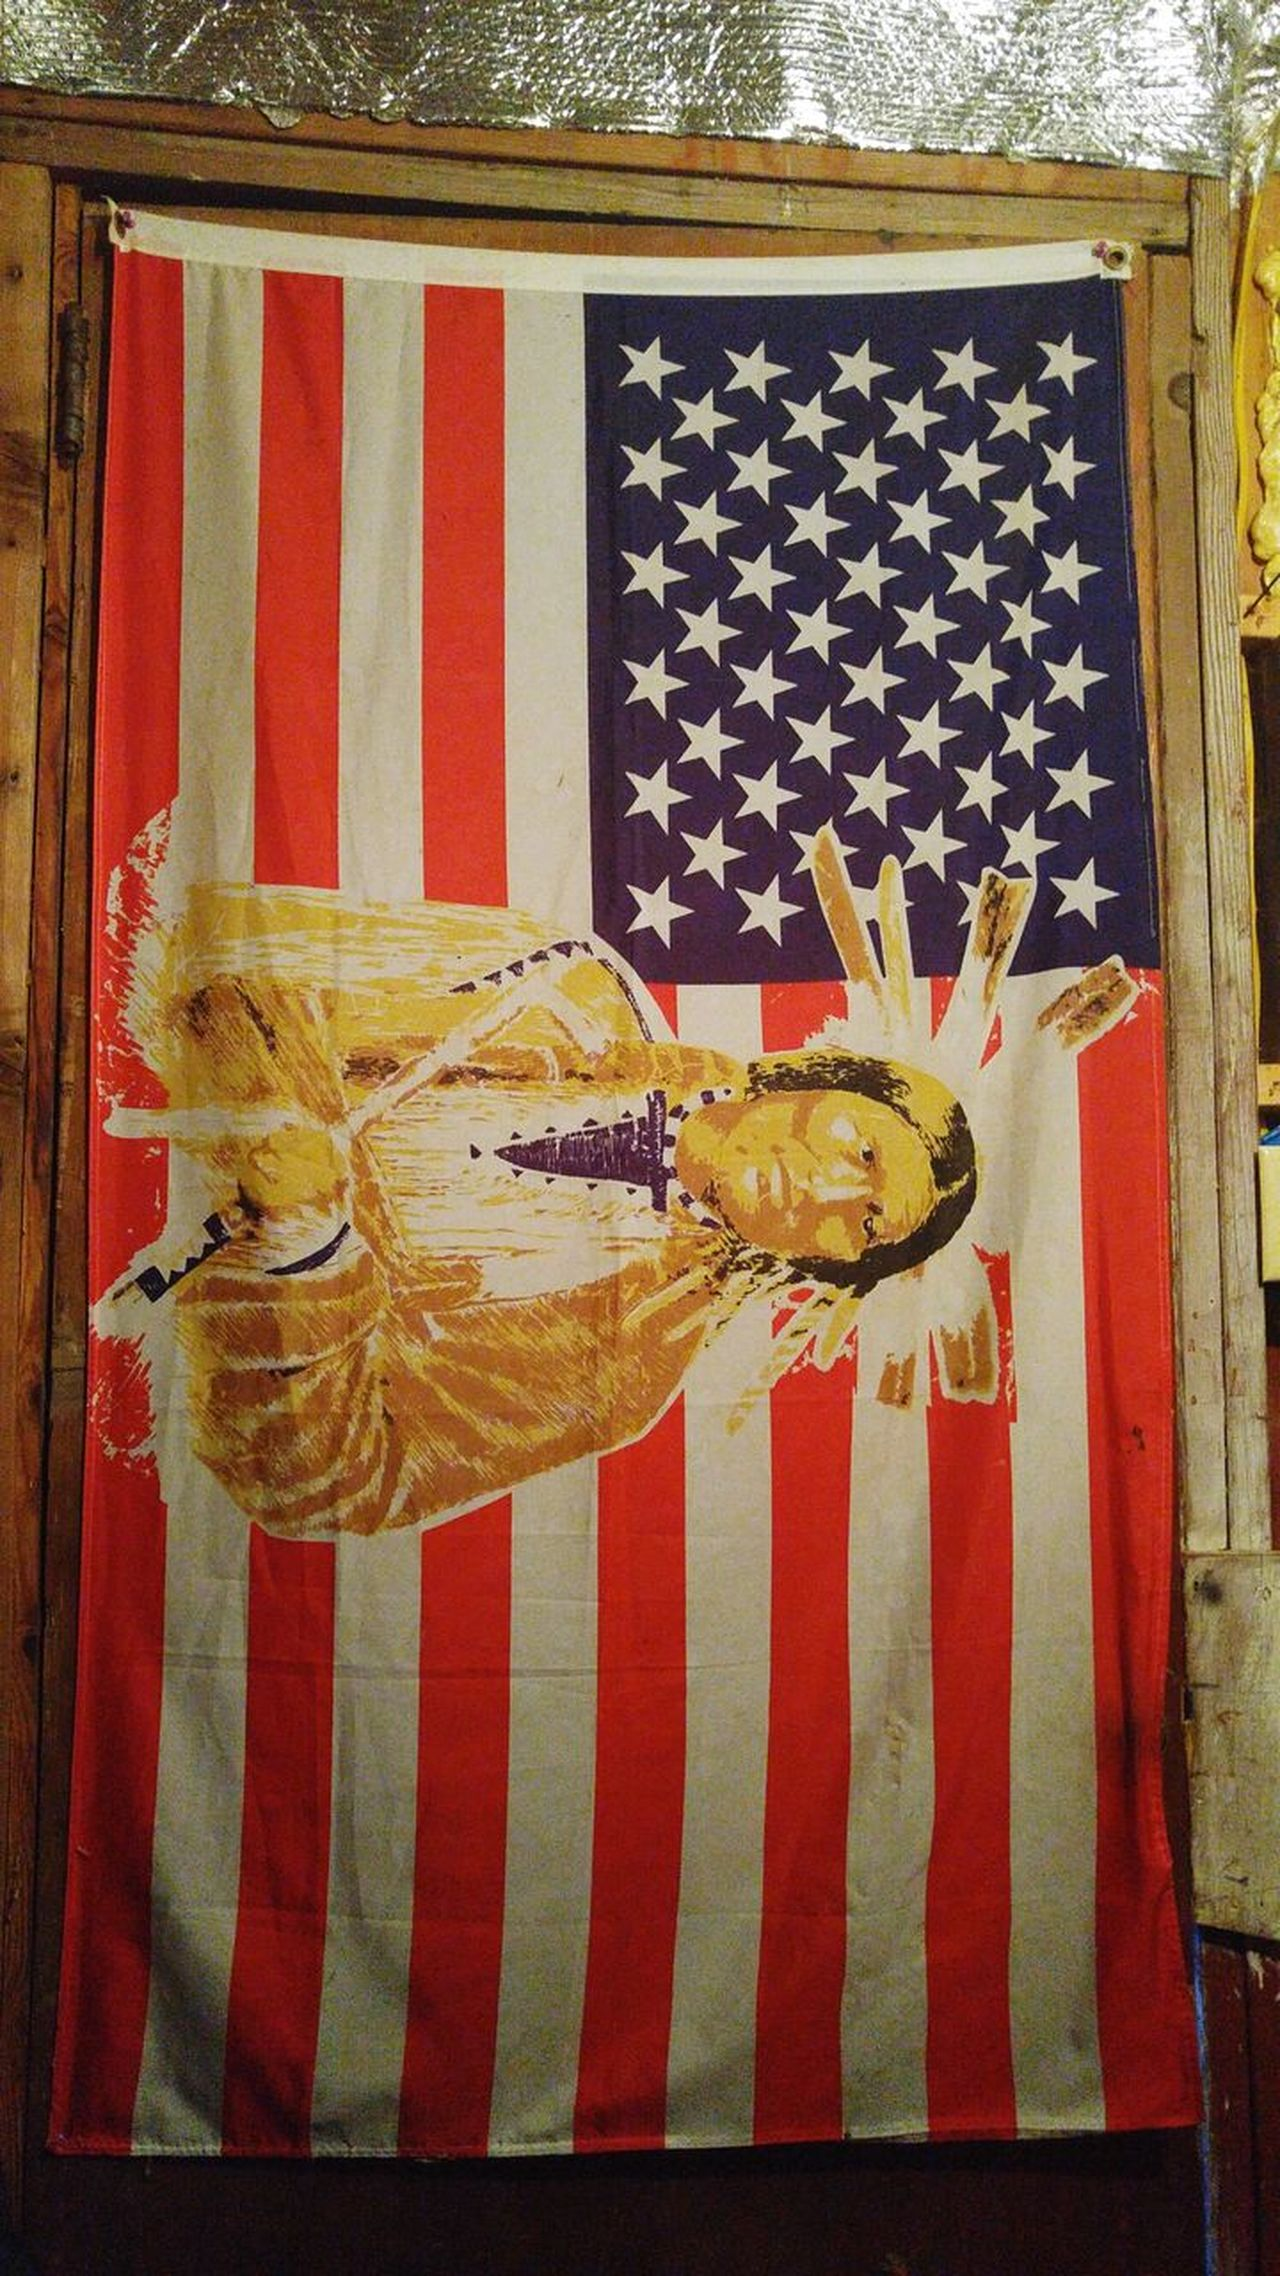 North America United States Of America Mullica Hill NJ New Jersey USA Tupponce Photography David Tupponce Native Americans Flags Upper Mattaponi Eastern Chickahominy Place Of Heart